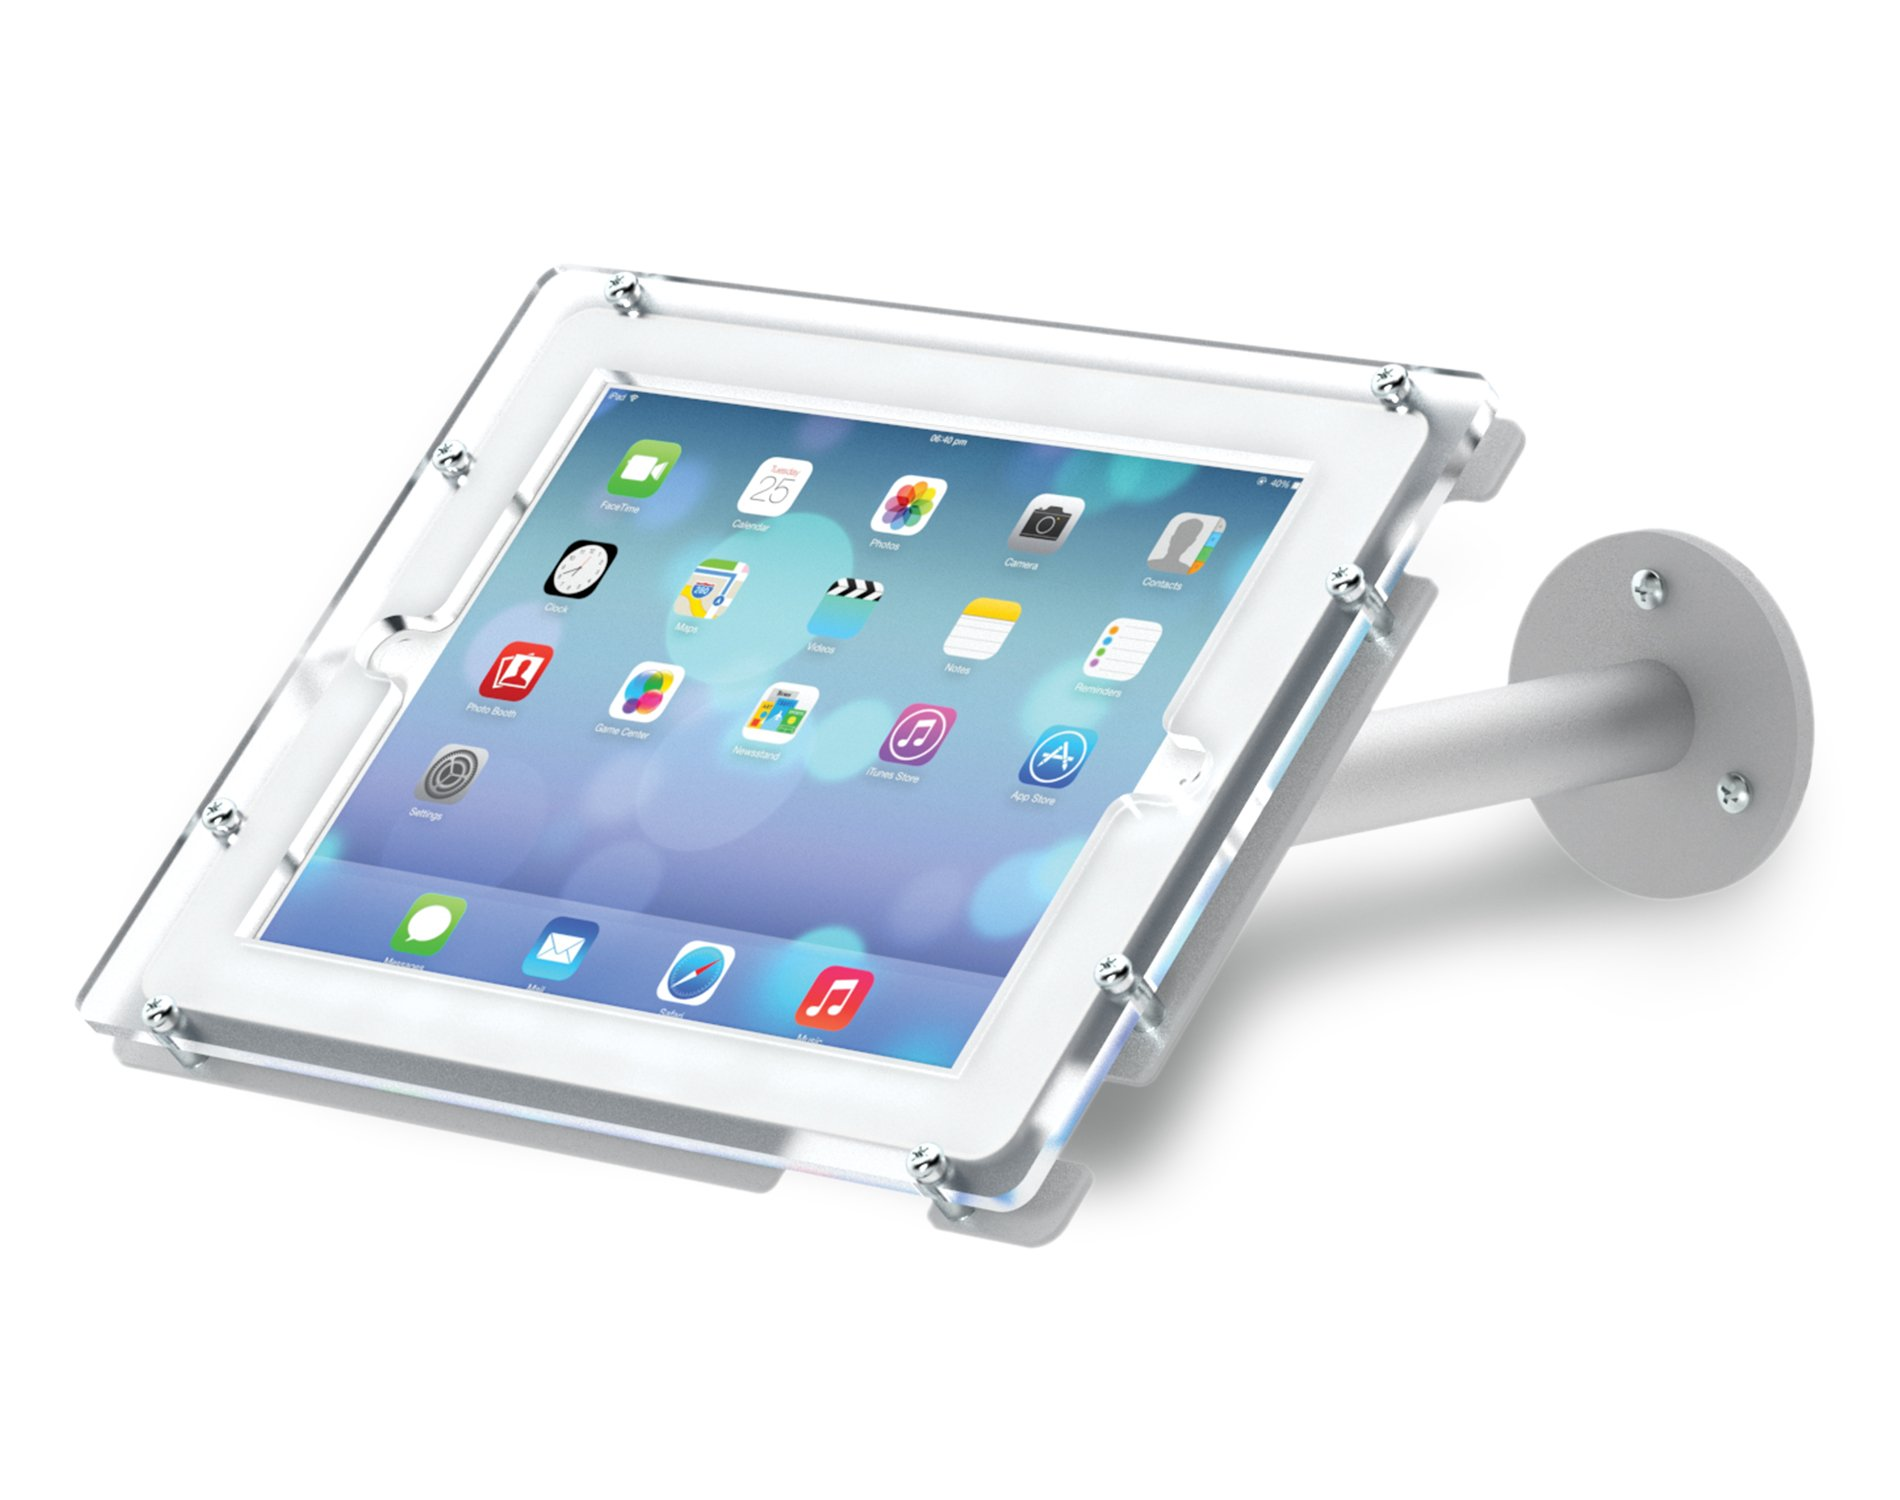 Trendrite Wall Mount iPad Pro Holder with Double-Flange Base for iPad 9.7, Satin Silver by DisplayFair